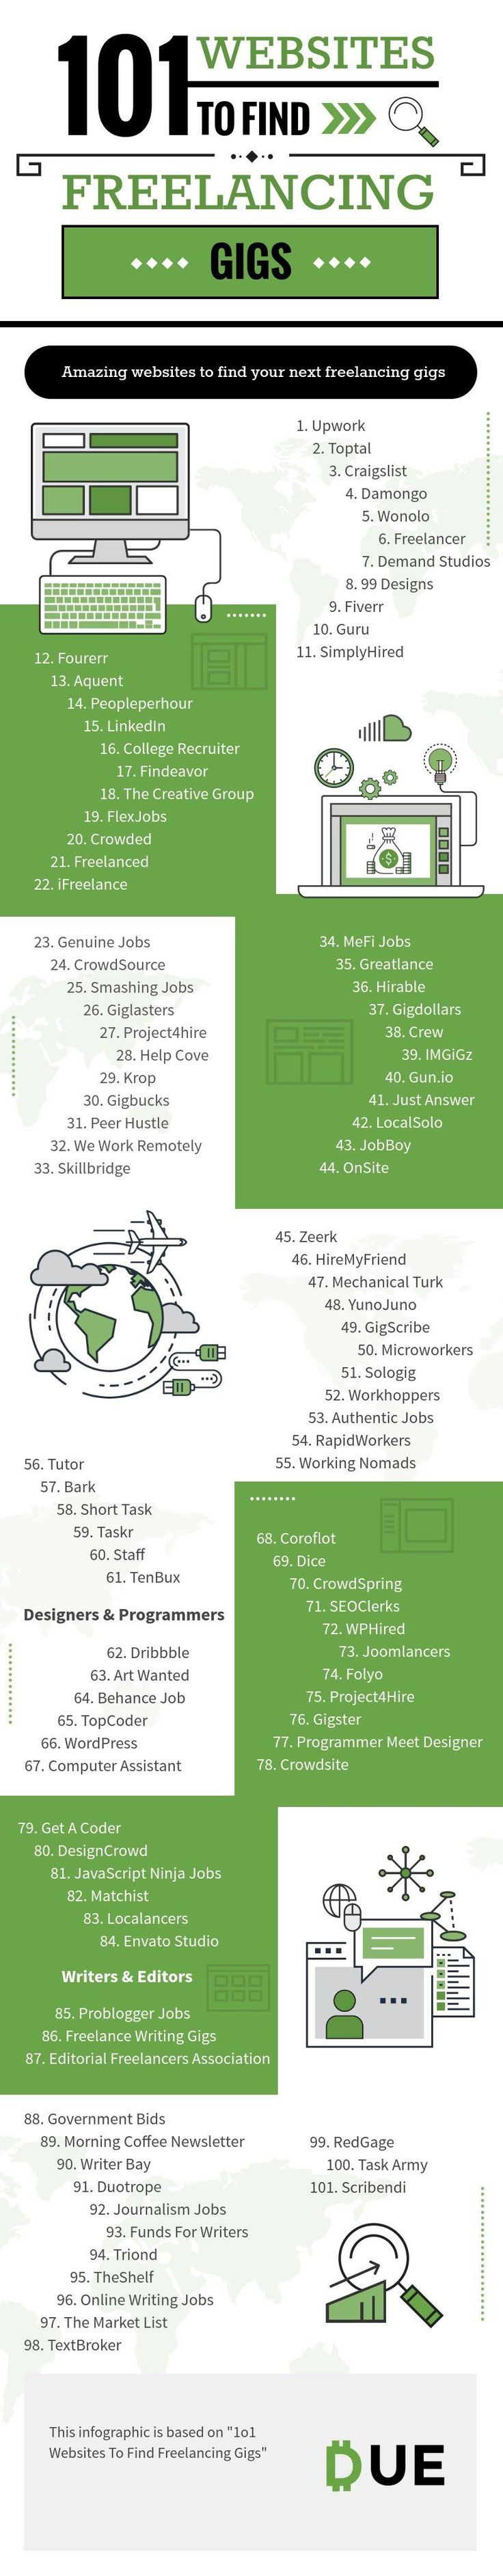 101 Websites To Get Freelance Jobs Fast - #infographic #huntinginfographic